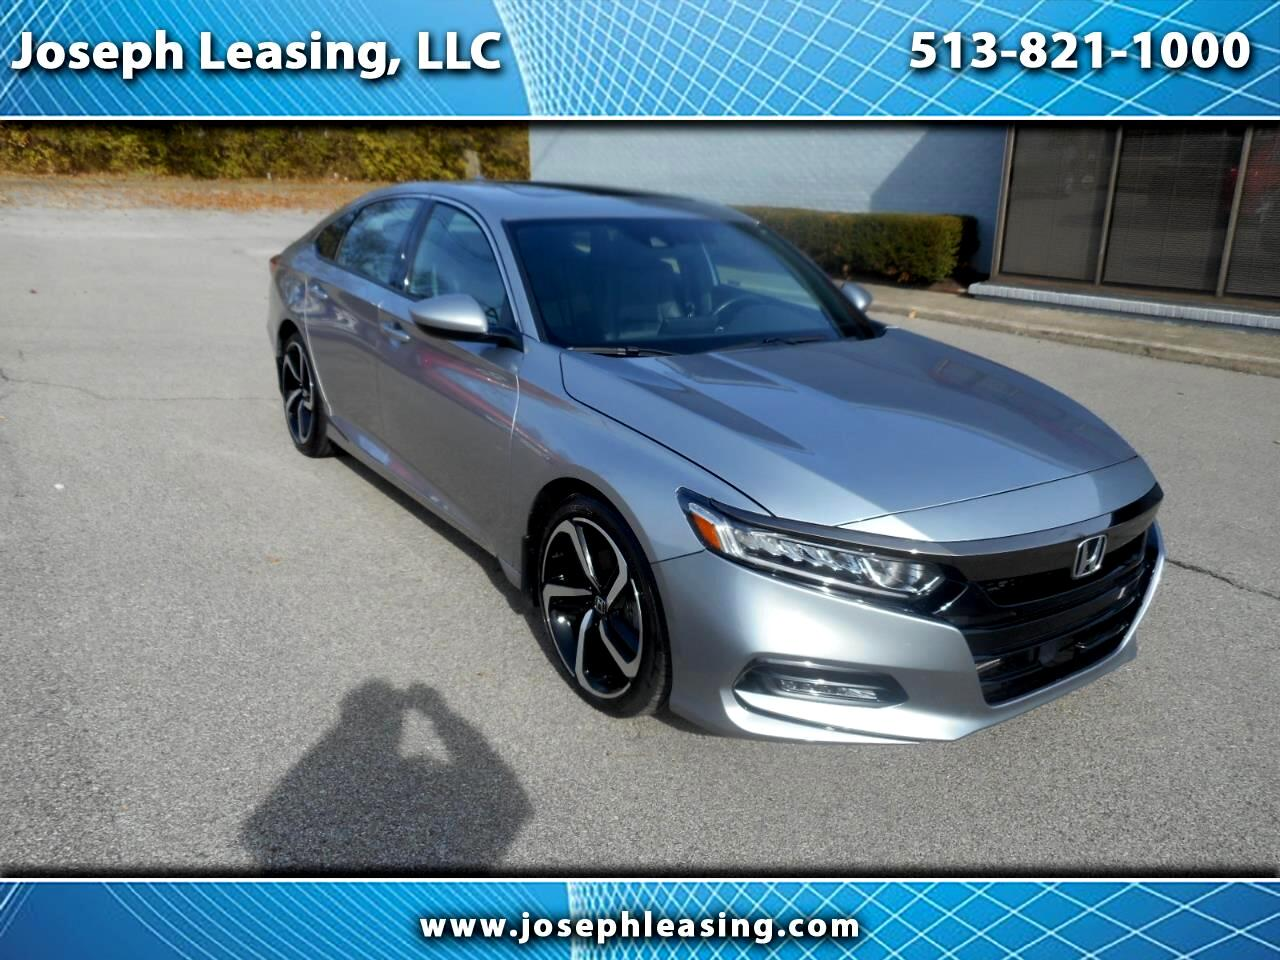 Honda Accord Sport 2.0T 2018